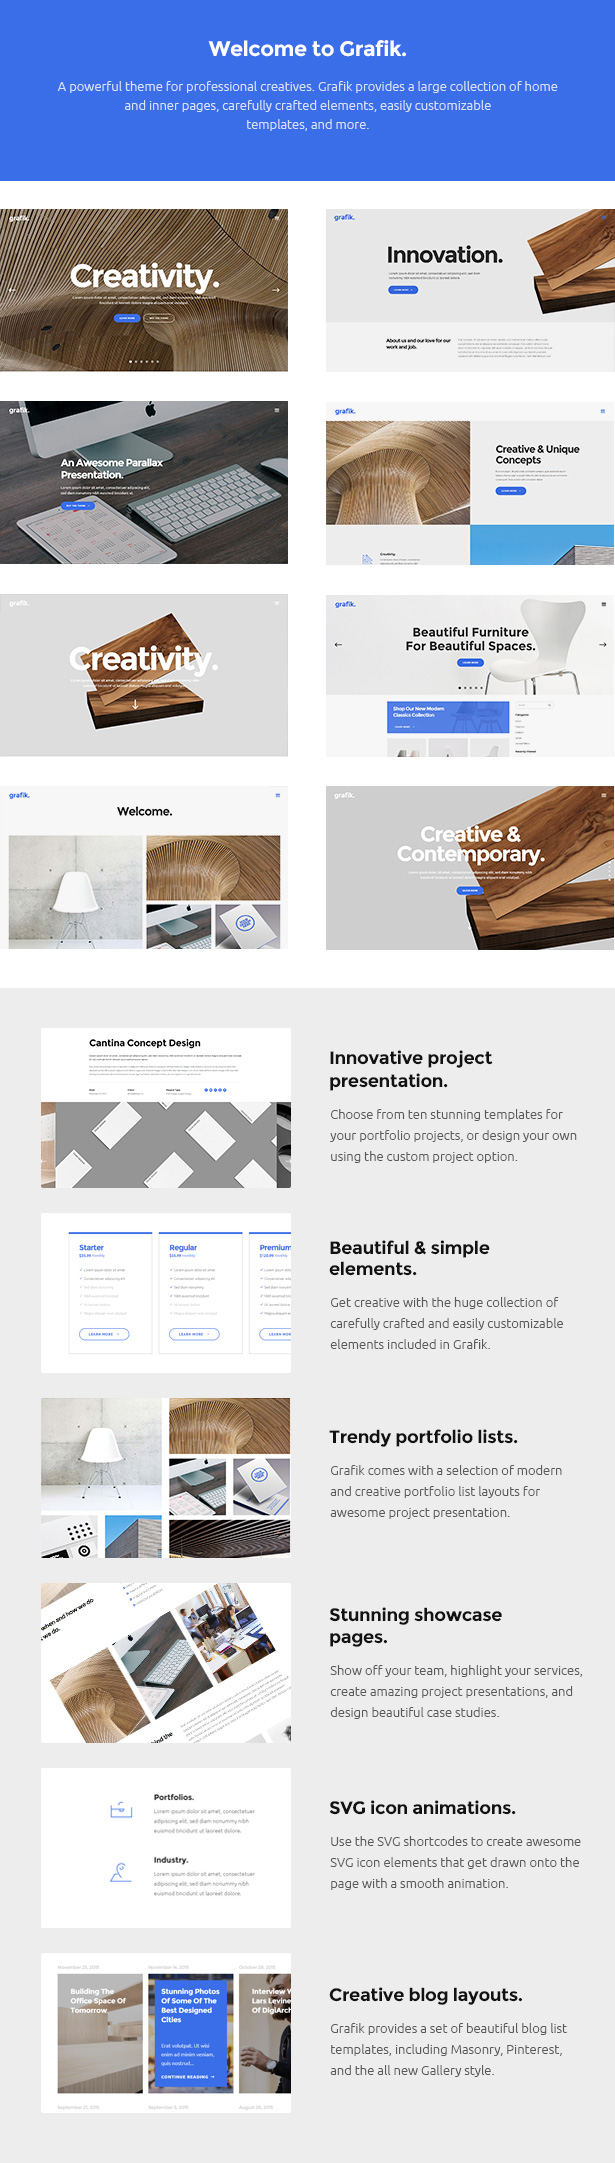 grafik architecture and design portfolio theme by select themes